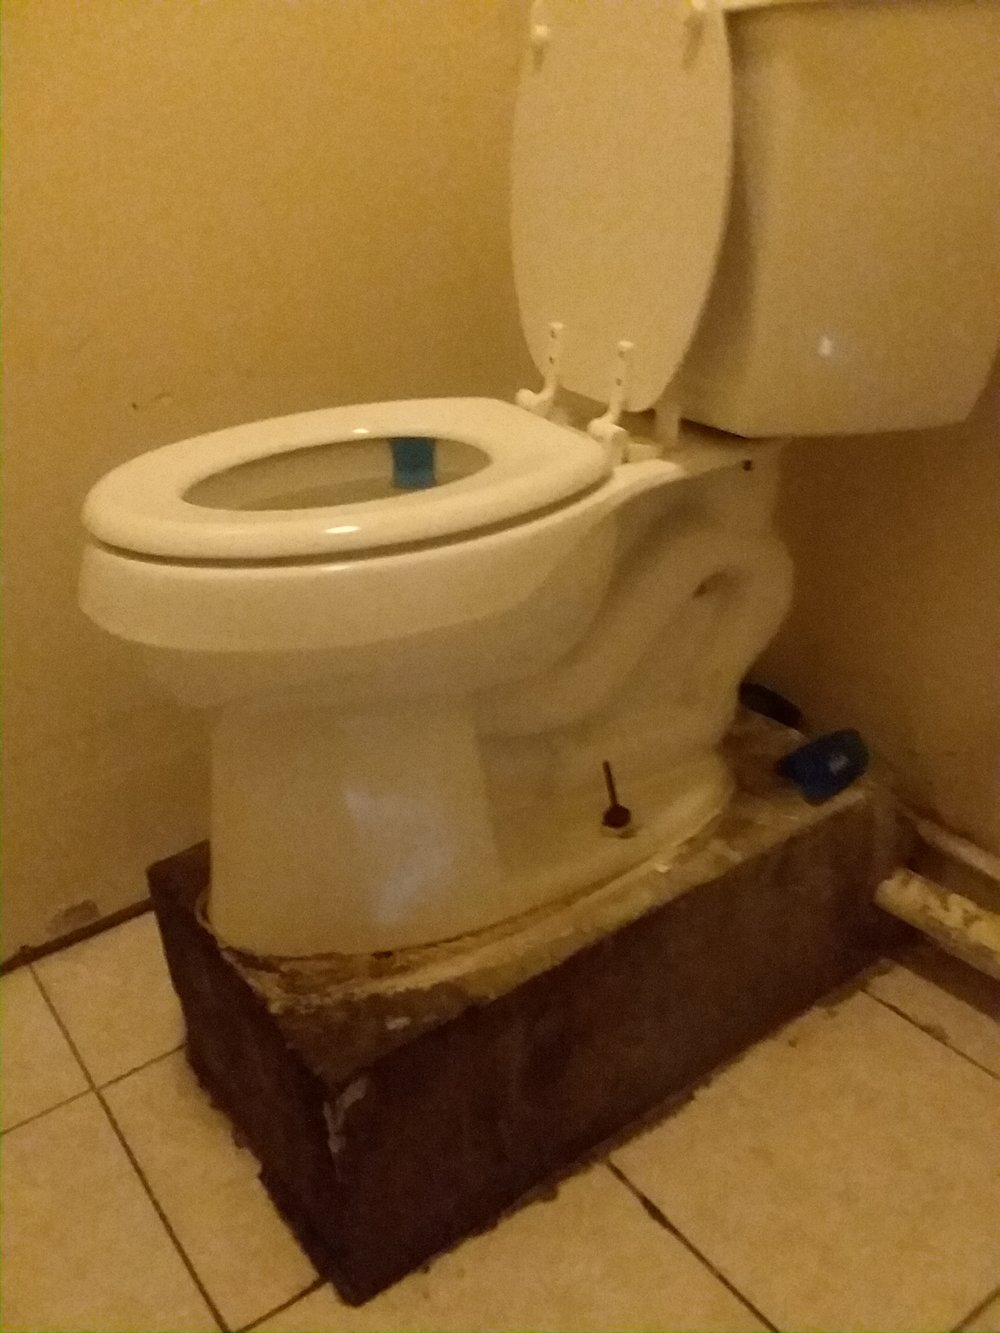 Had to take a pic of the janky toilet in the convenience store.